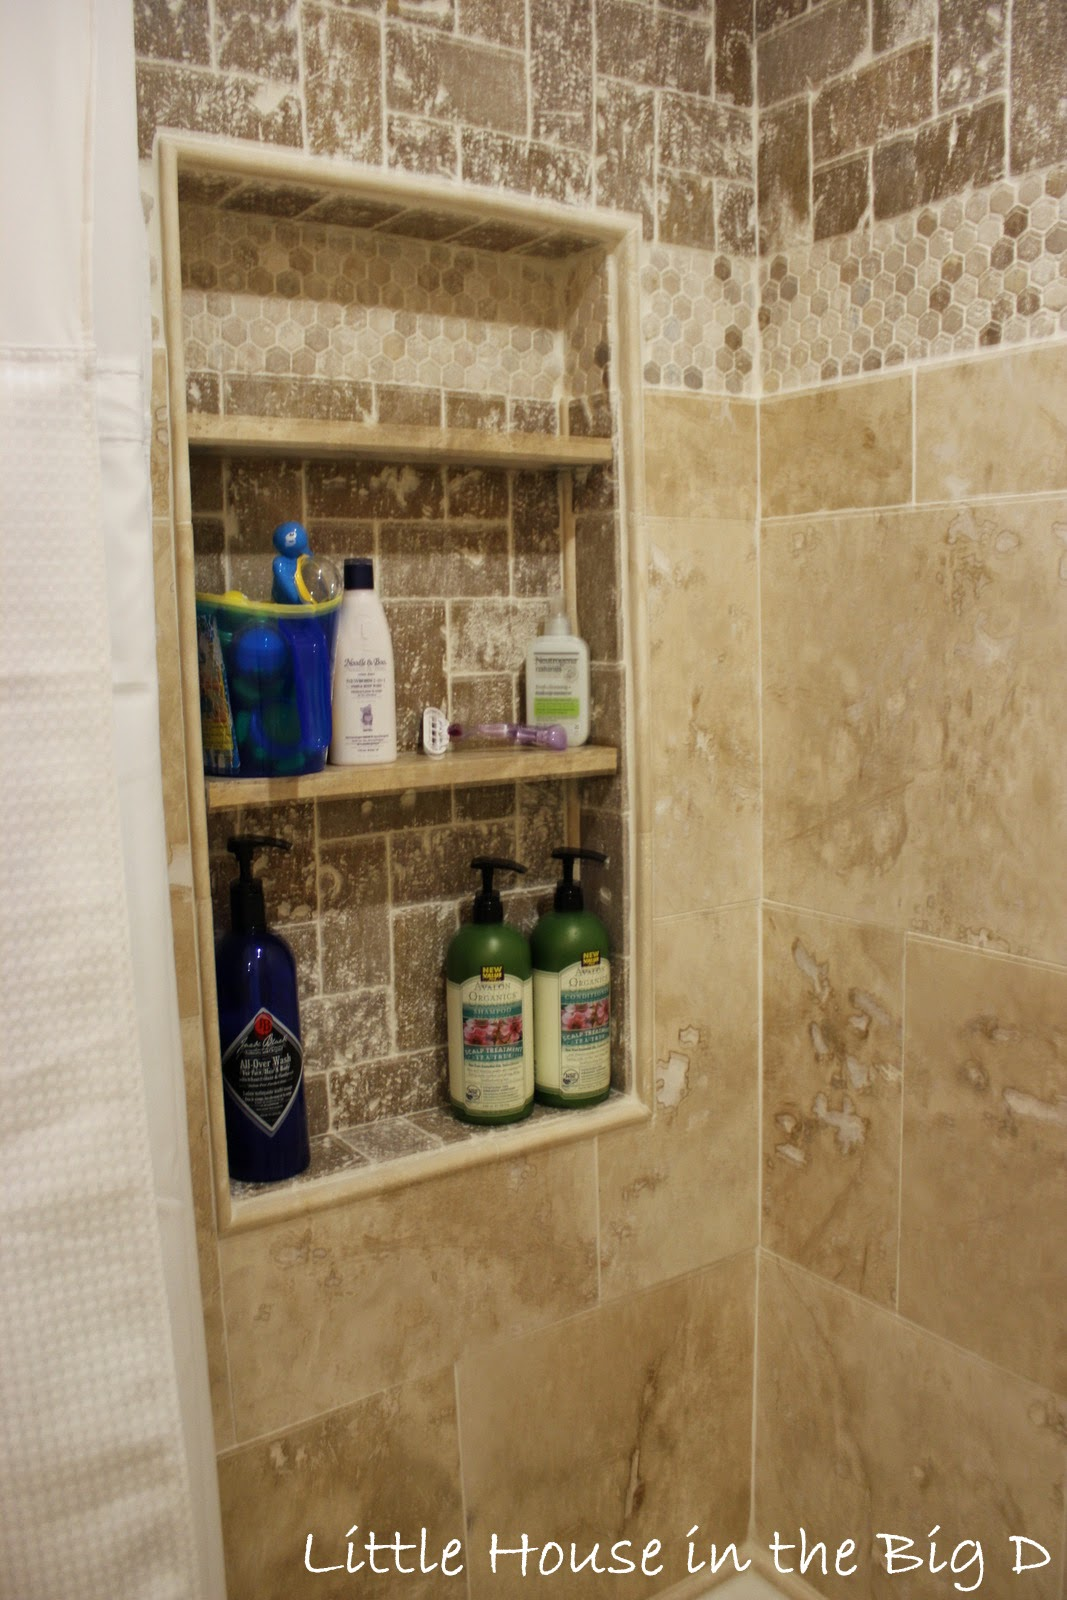 Trend No more rack hanging from the shower head no more gross bathtub corners with soap scum Everyone has a home